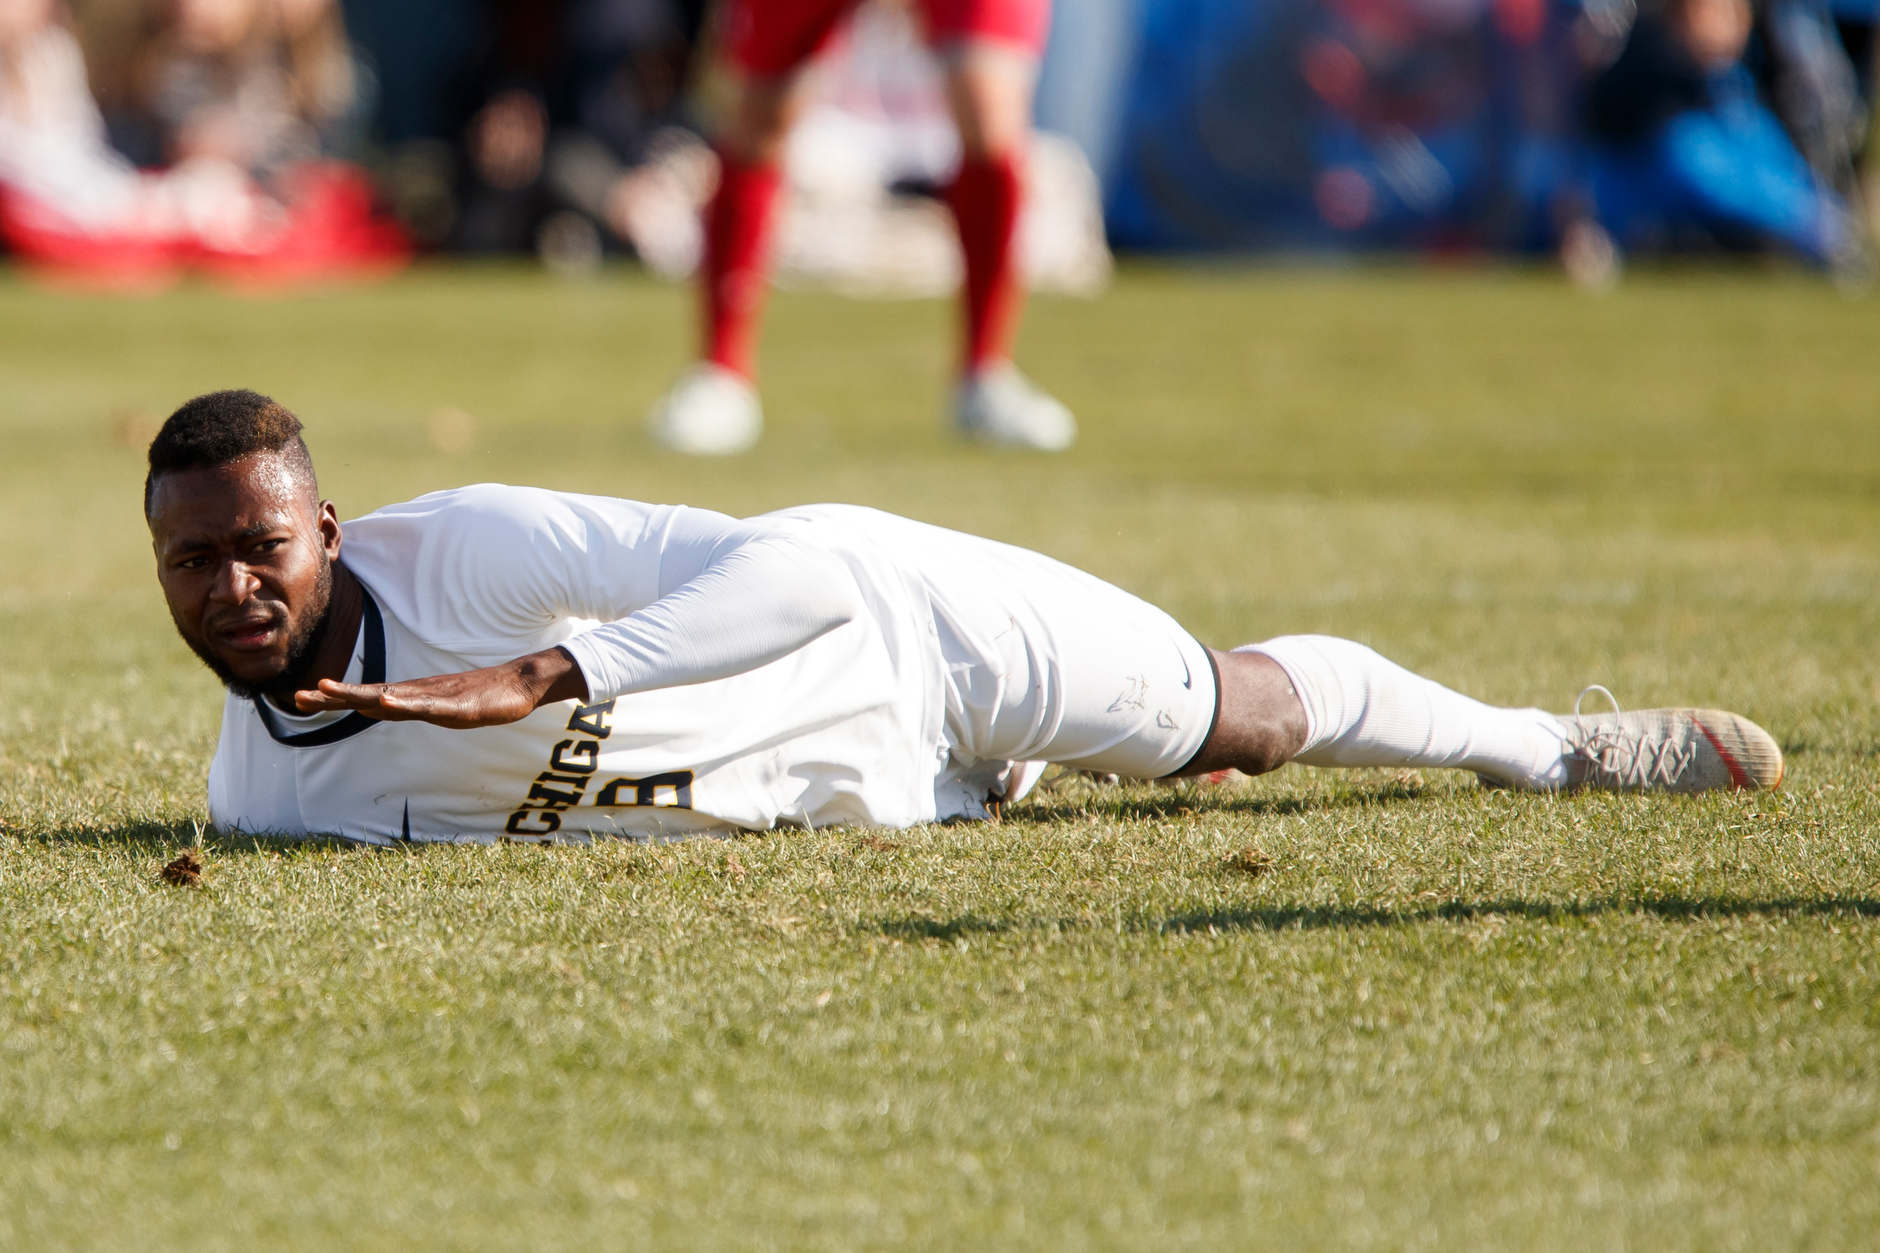 Michigan's Mohammed Zakyi (9) reacts after missing a cross during the Big Ten Men's Soccer Tournament championship game against Indiana at Grand Park in Westfield, Indiana on Sunday, Nov. 11, 2018. (Photo by James Brosher)